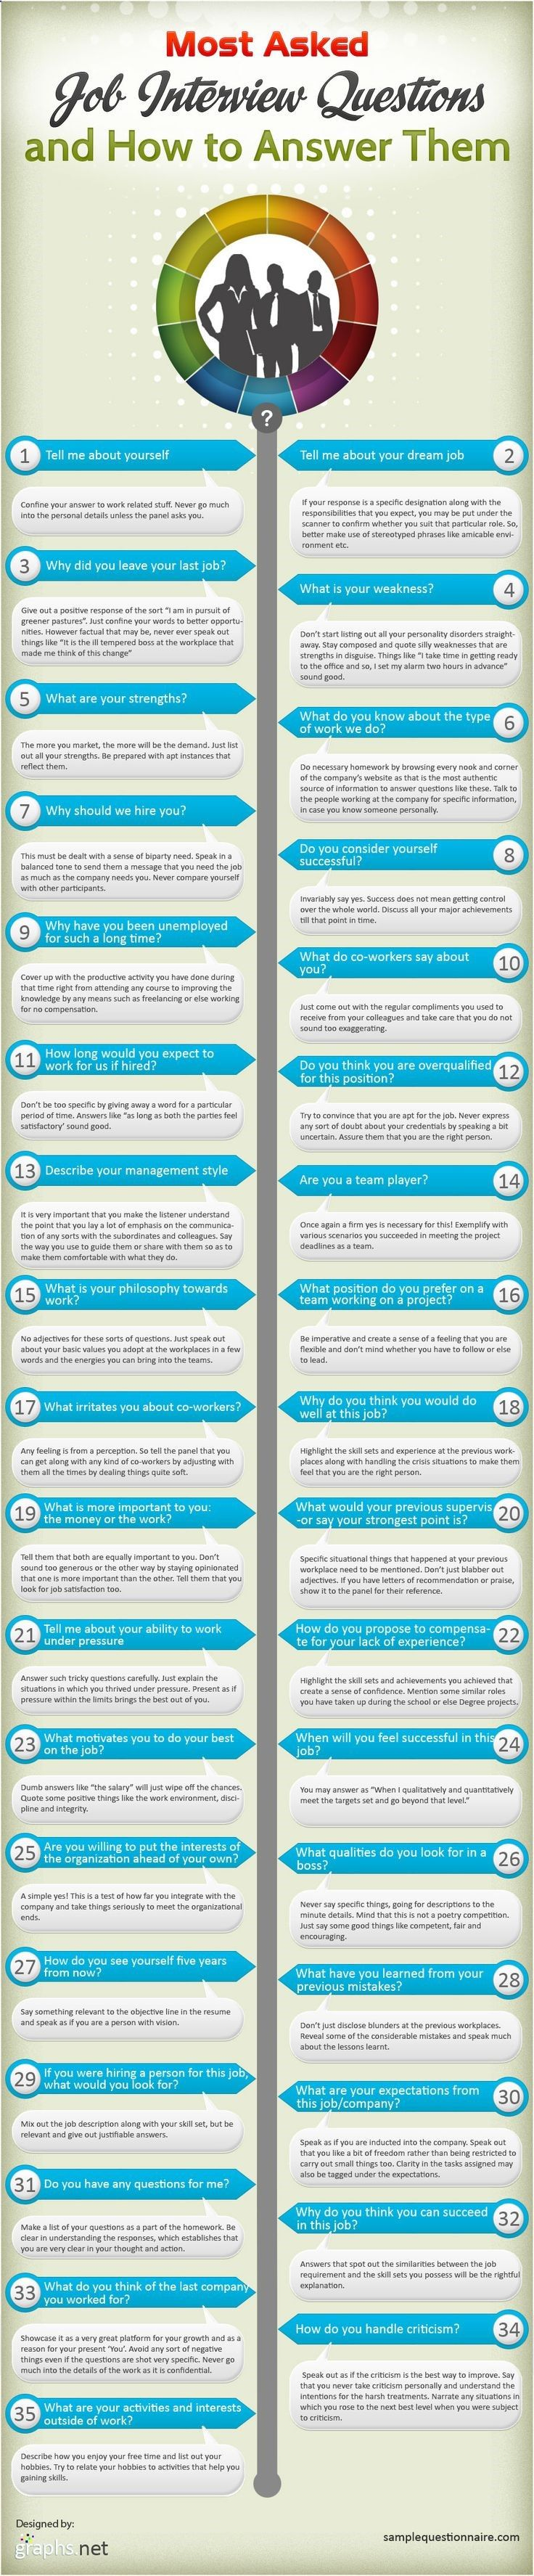 Tips on How to Answer the Most Commonly Asked Job Interview Questions